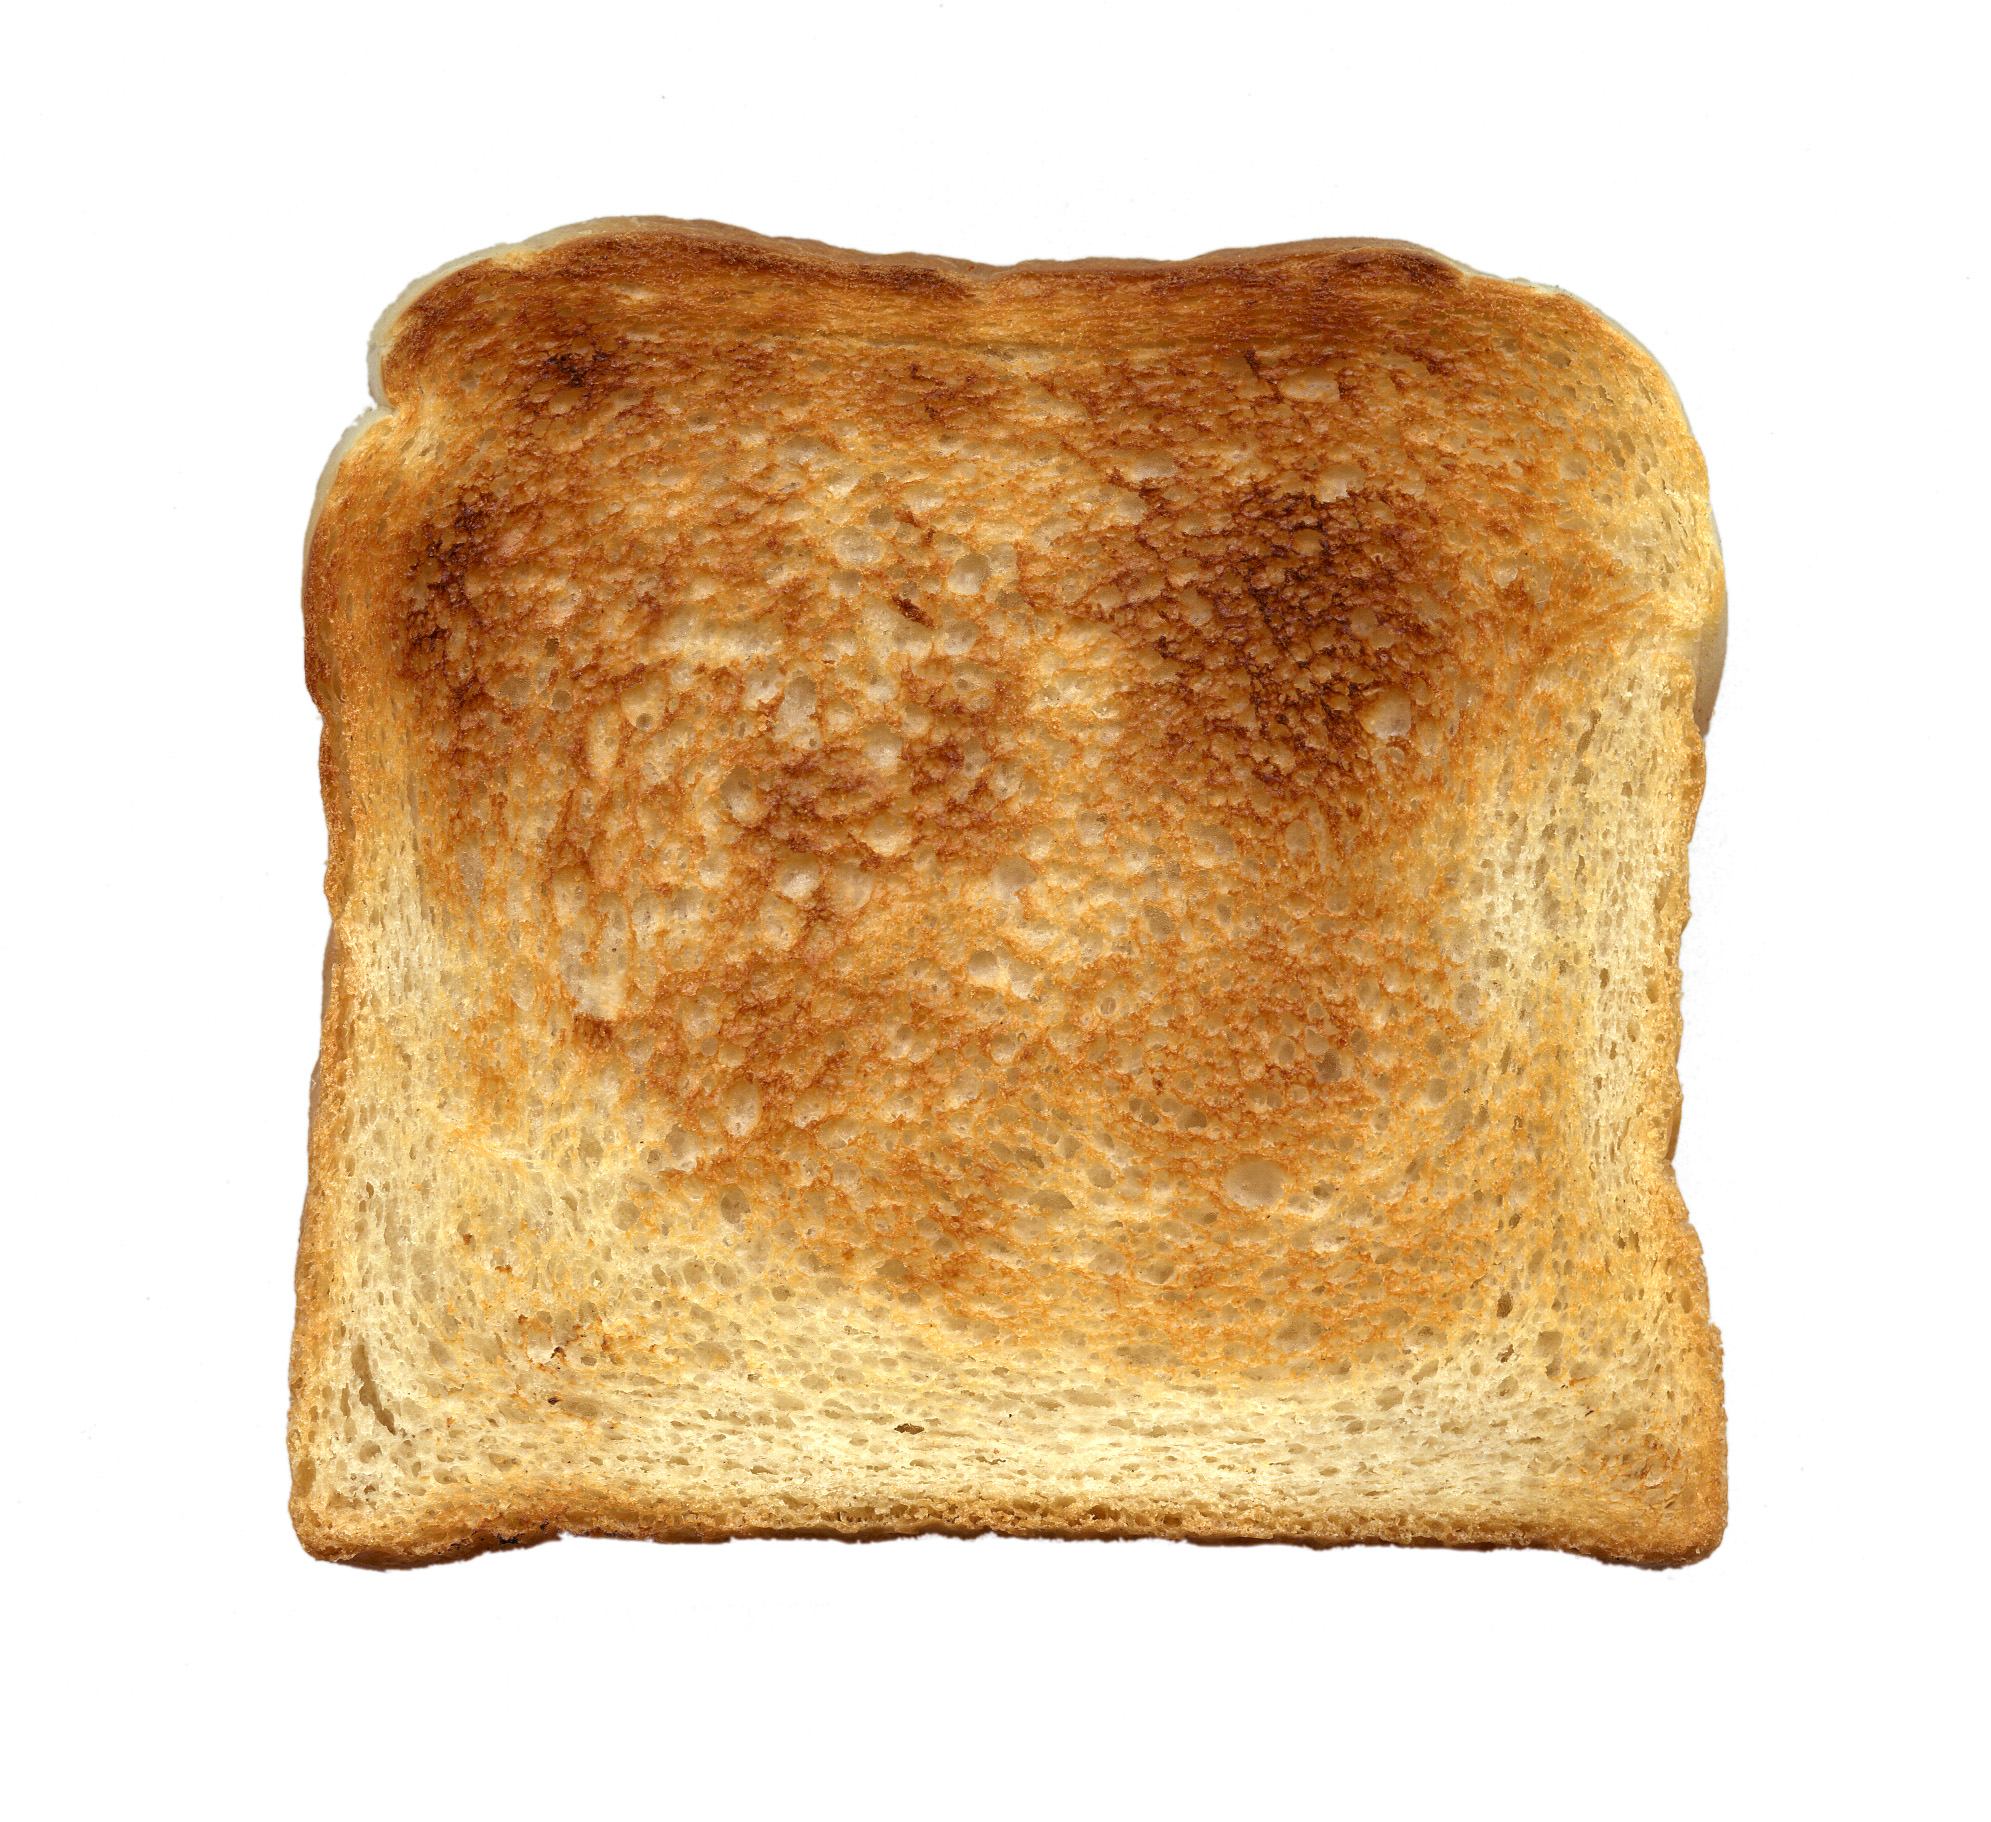 Clip Art Toast Clipart toast clipart kid free images at clker com vector clip art online royalty